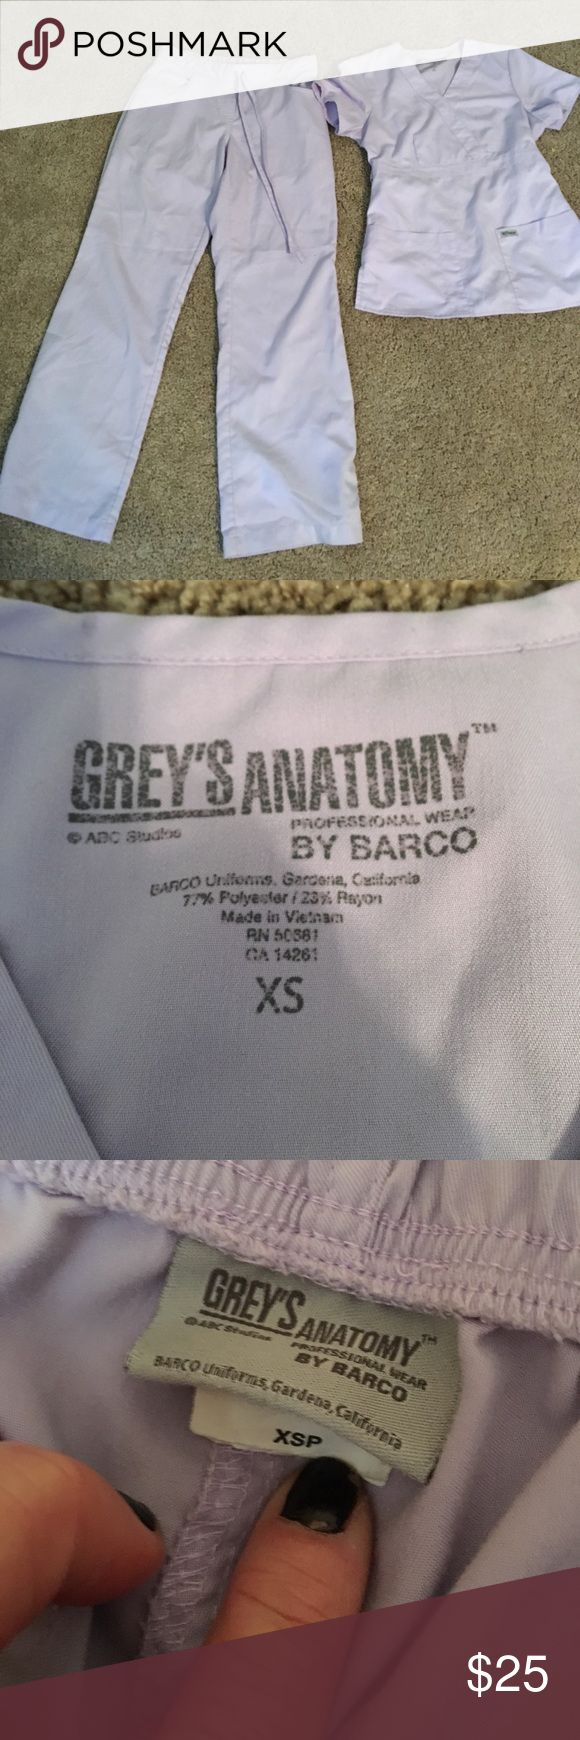 Grey's Anatomy size extra small petite scrub set Purple Grey's Anatomy size extra small top and extra small petite pants scrub set see all of our other scrubs would like to bundle and save you money grey's Anatomy Pants